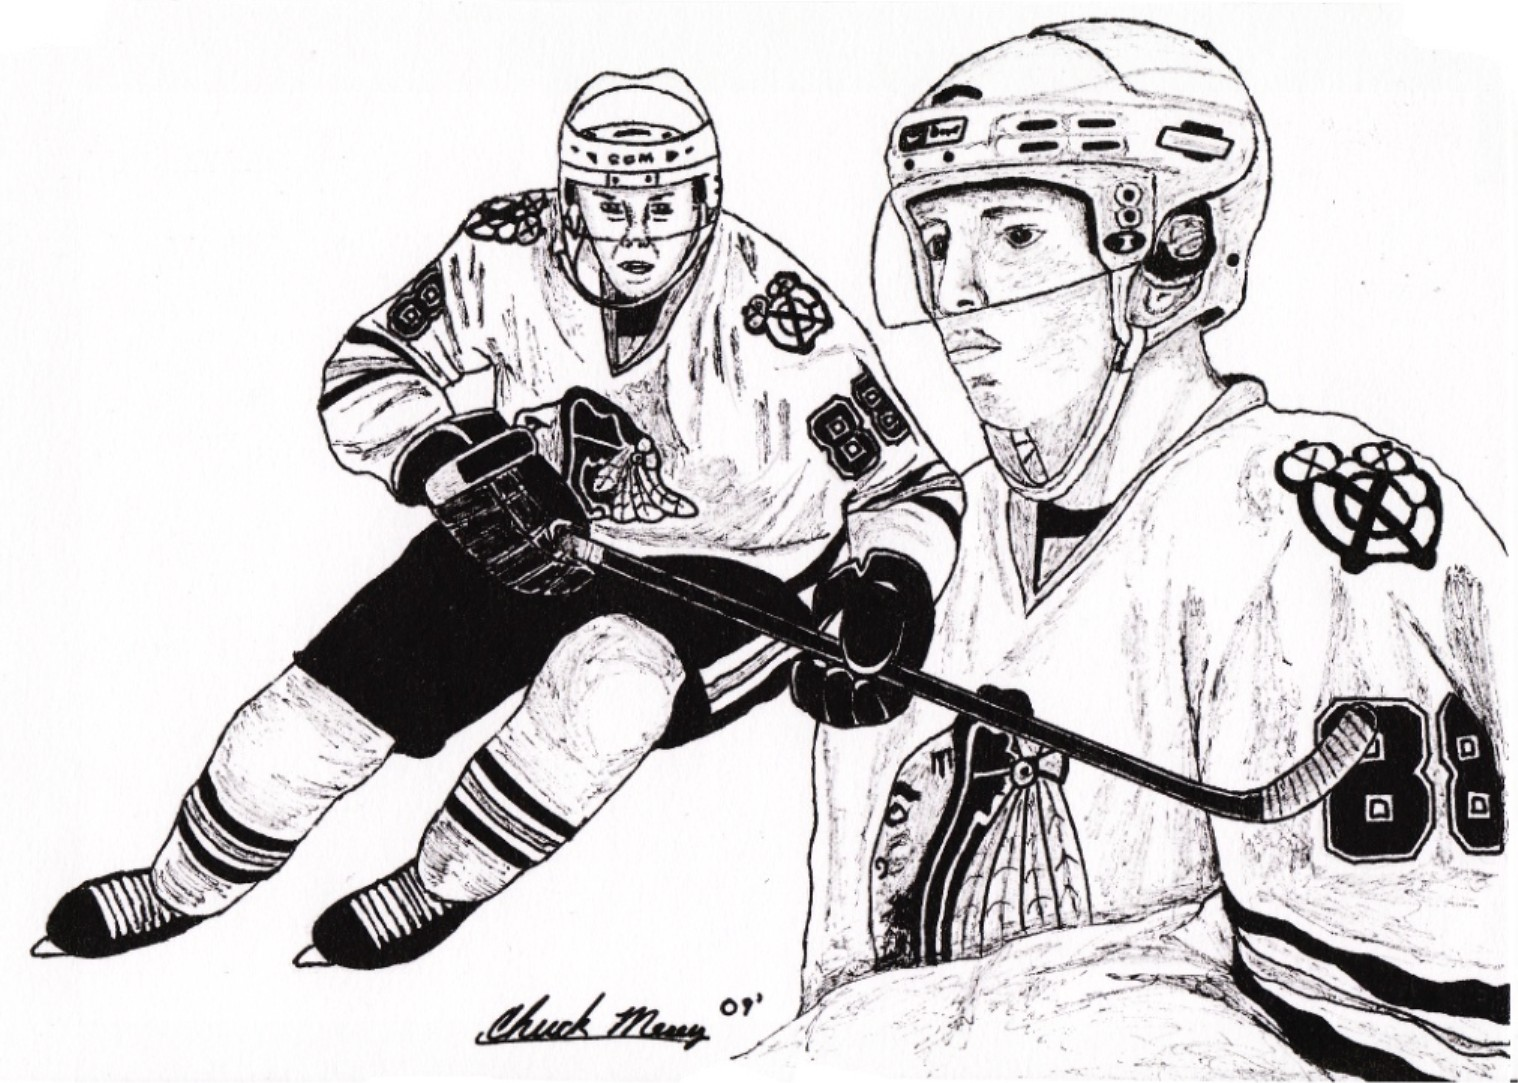 Hockey in art September 2010